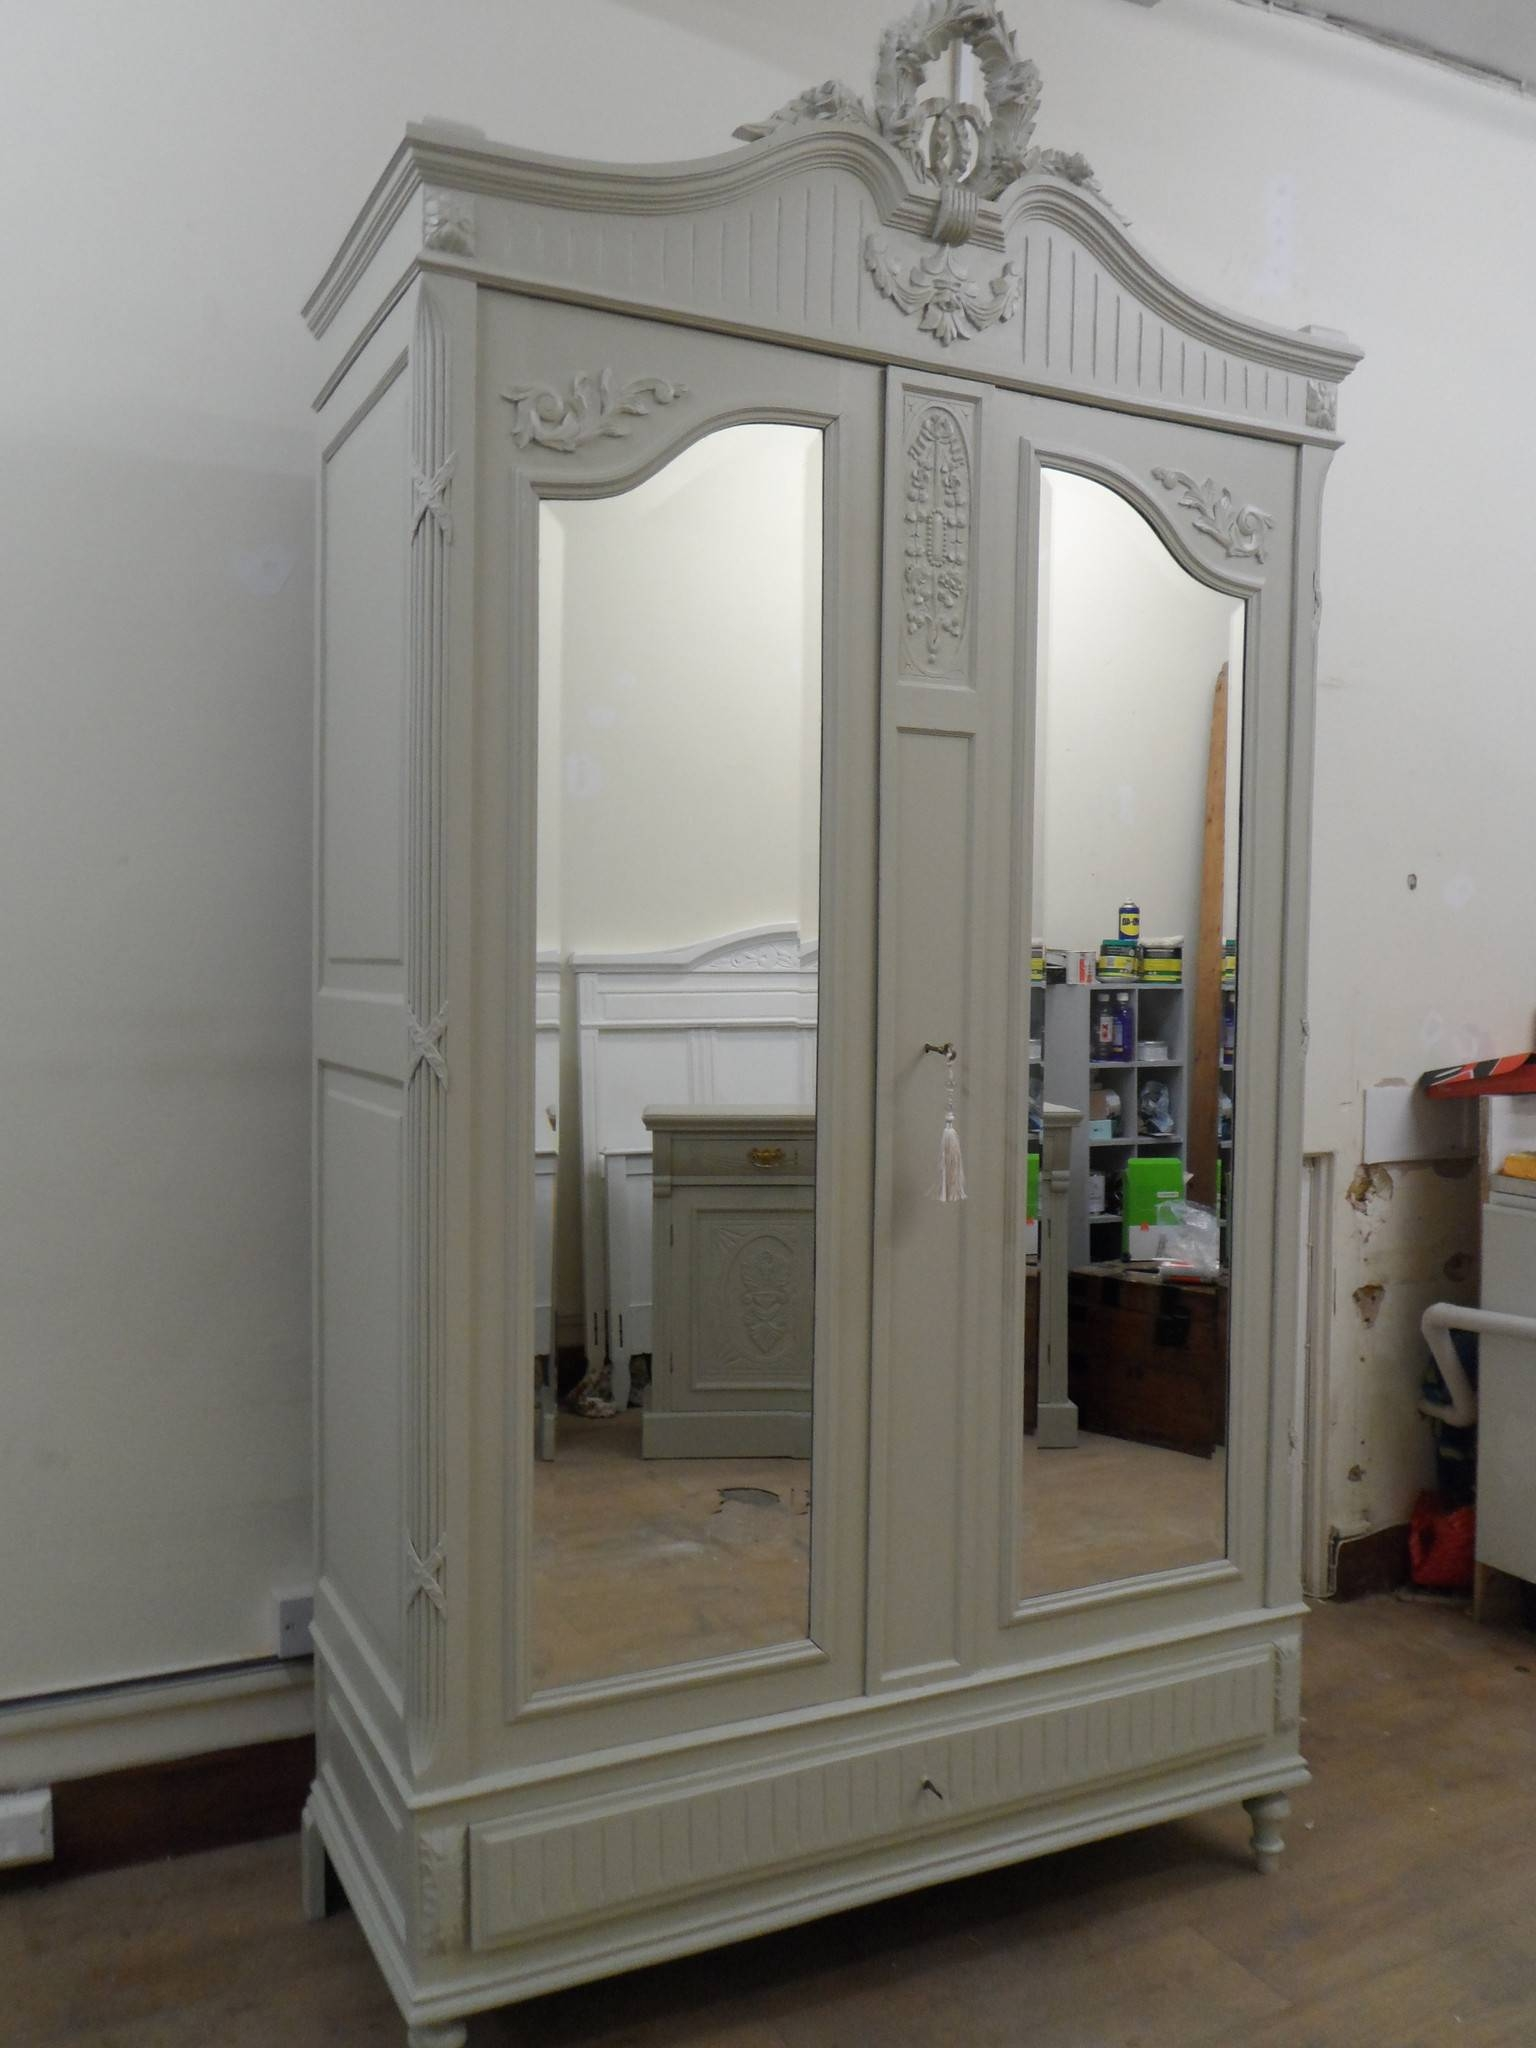 Furniture: Exciting Armoire Wardrobe For Interior Storage Design intended for White French Armoire Wardrobes (Image 7 of 15)